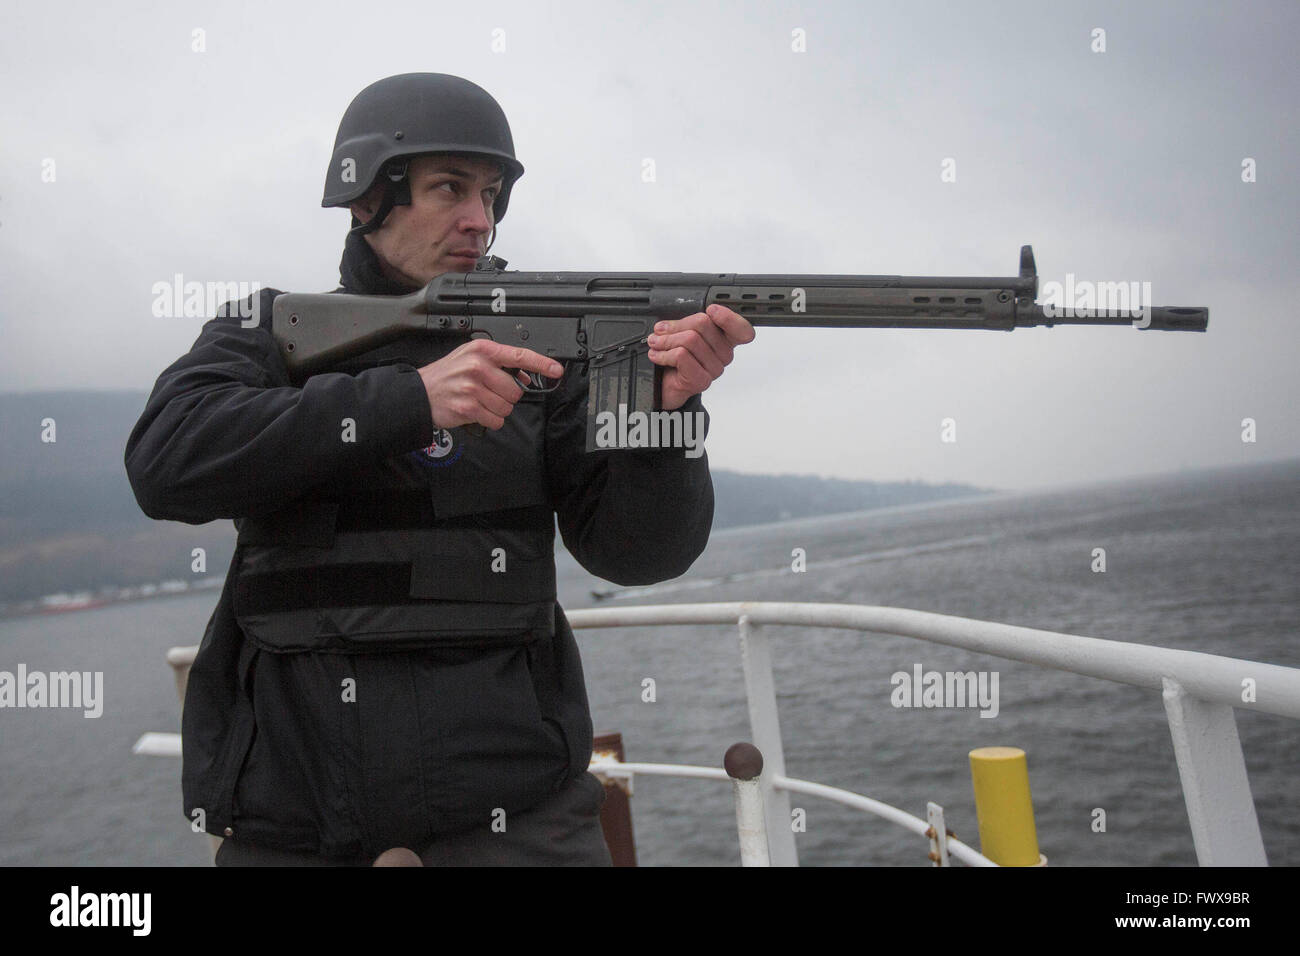 Anti piracy training at the Holy Loch in Dunoon. - Stock Image